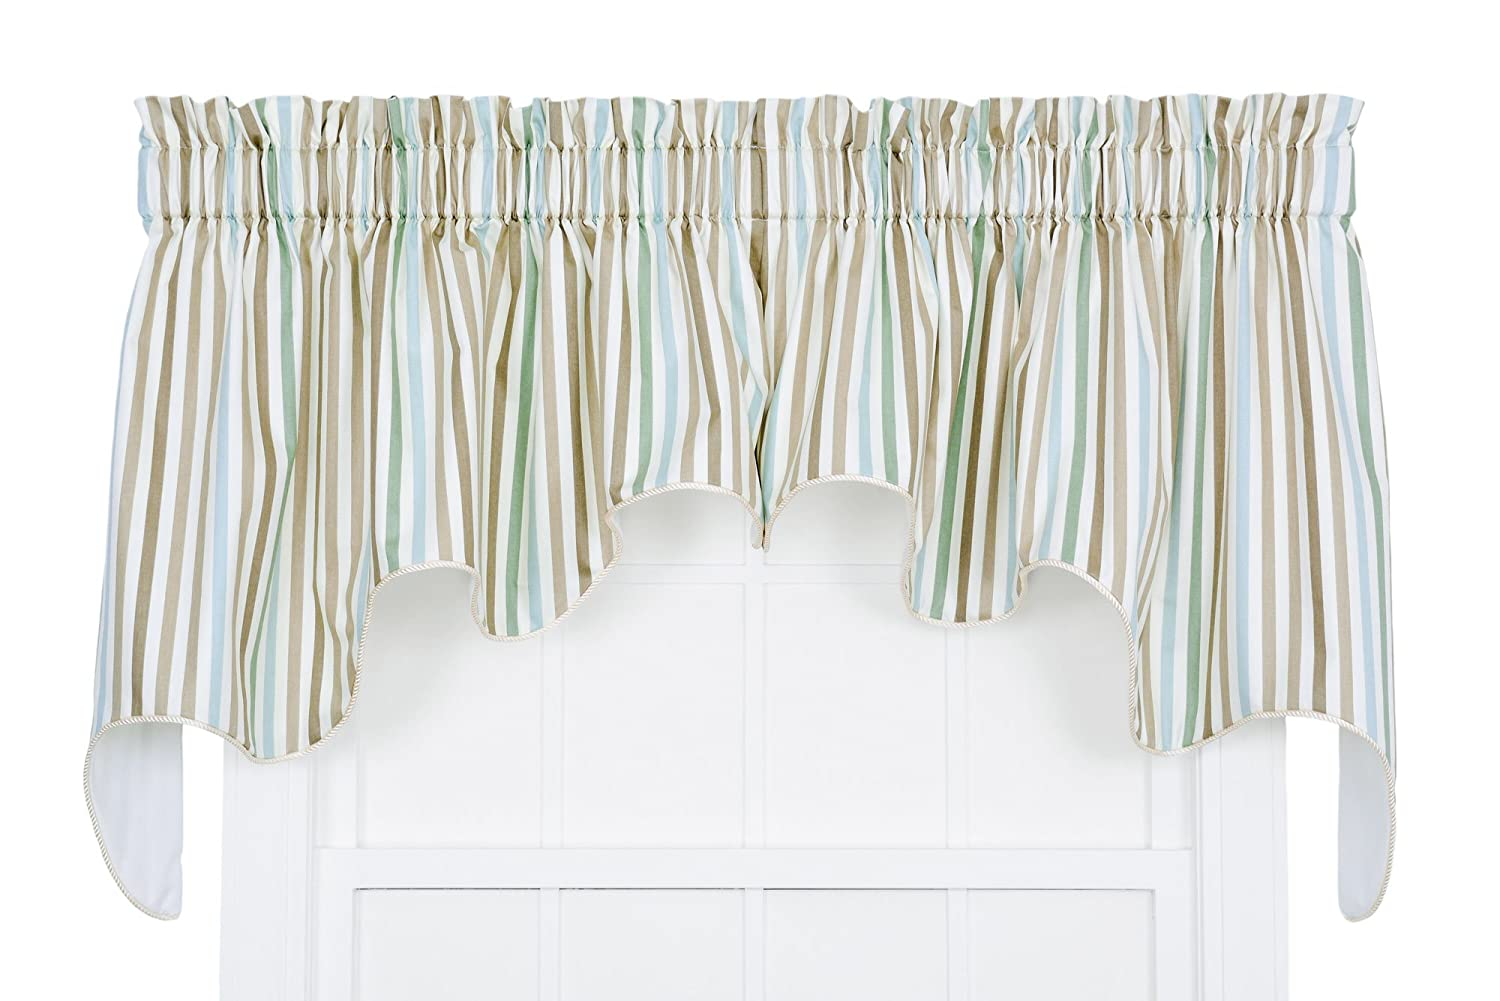 Ellis Curtain Line-Up Stripe Print Lined Duchess Valance, 100 by 30-Inch, Latte